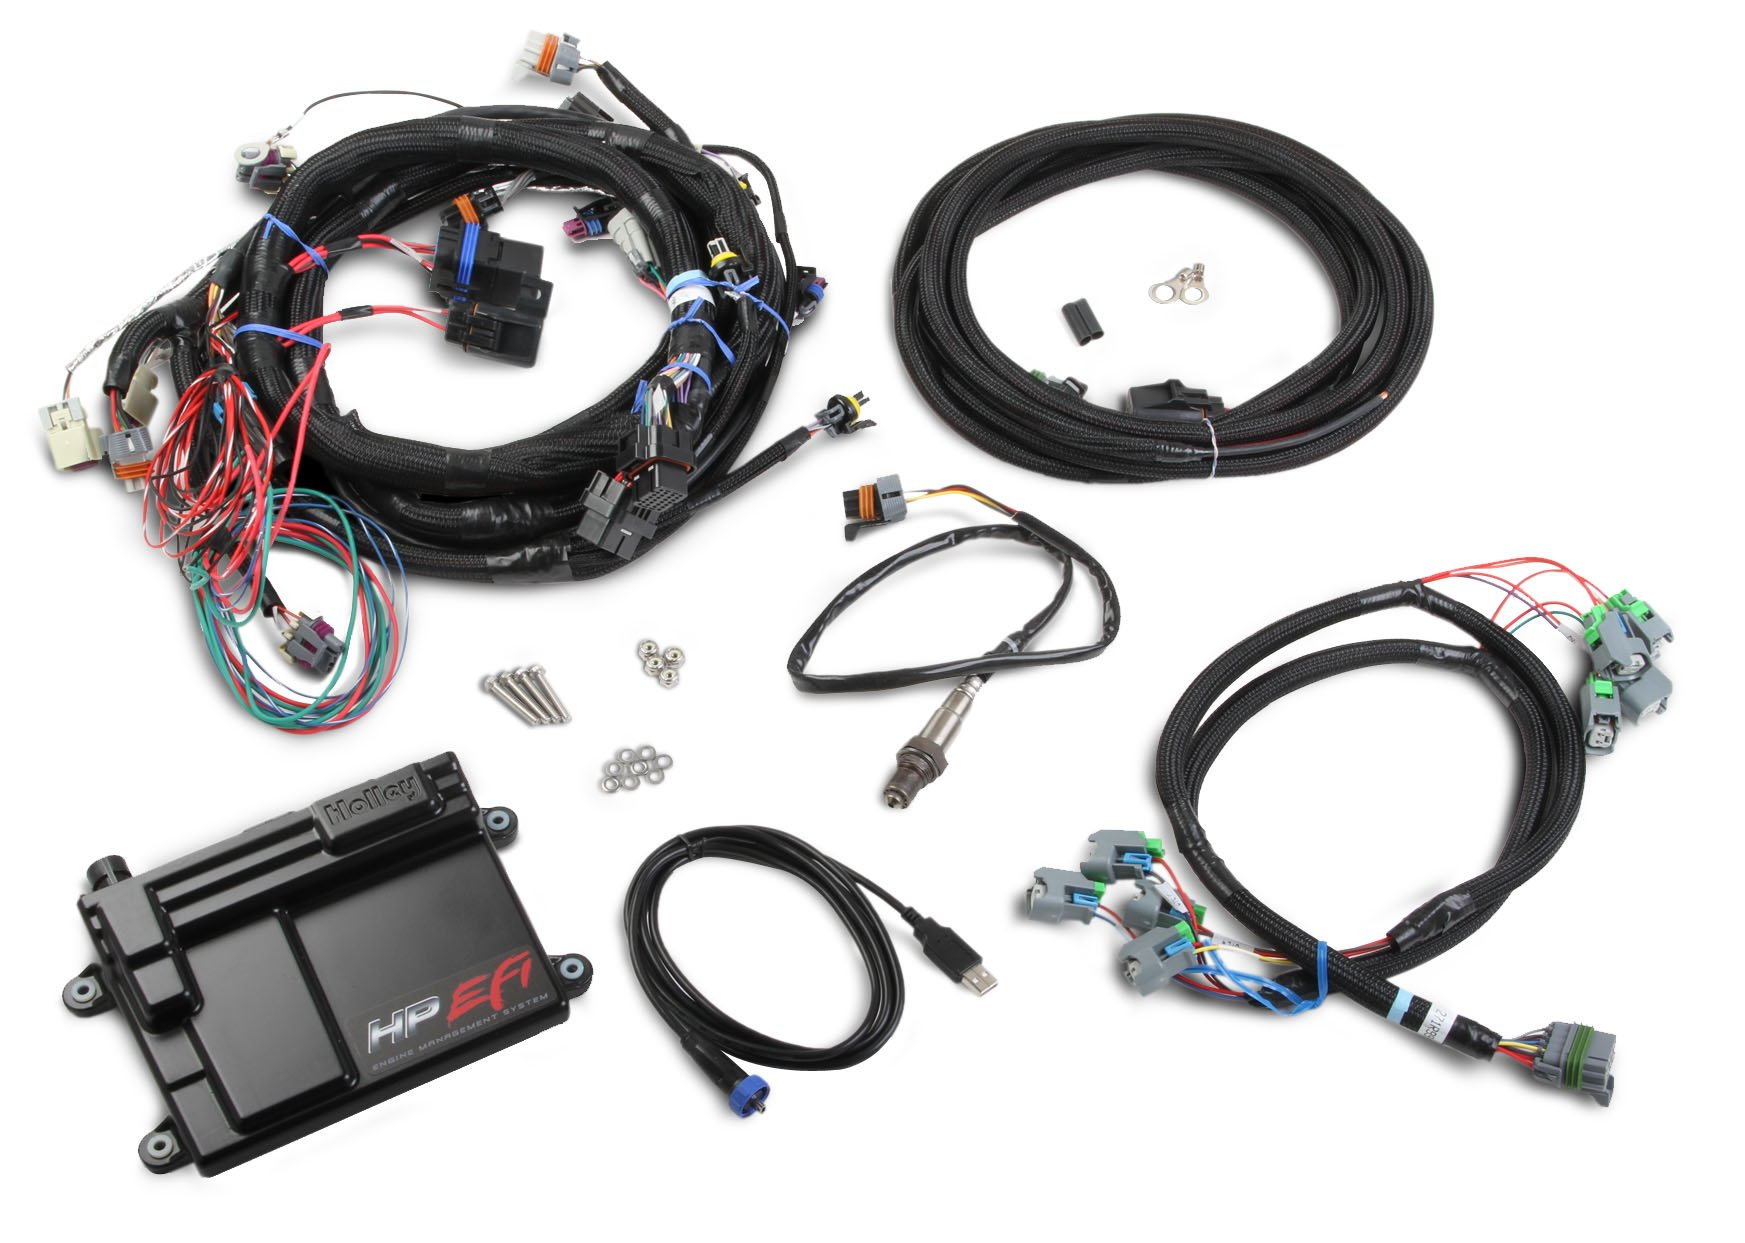 550 603 holley efi 550 603 hp efi ecu & harness kits Wiring Diagrams for Chevy LS Engines at gsmportal.co